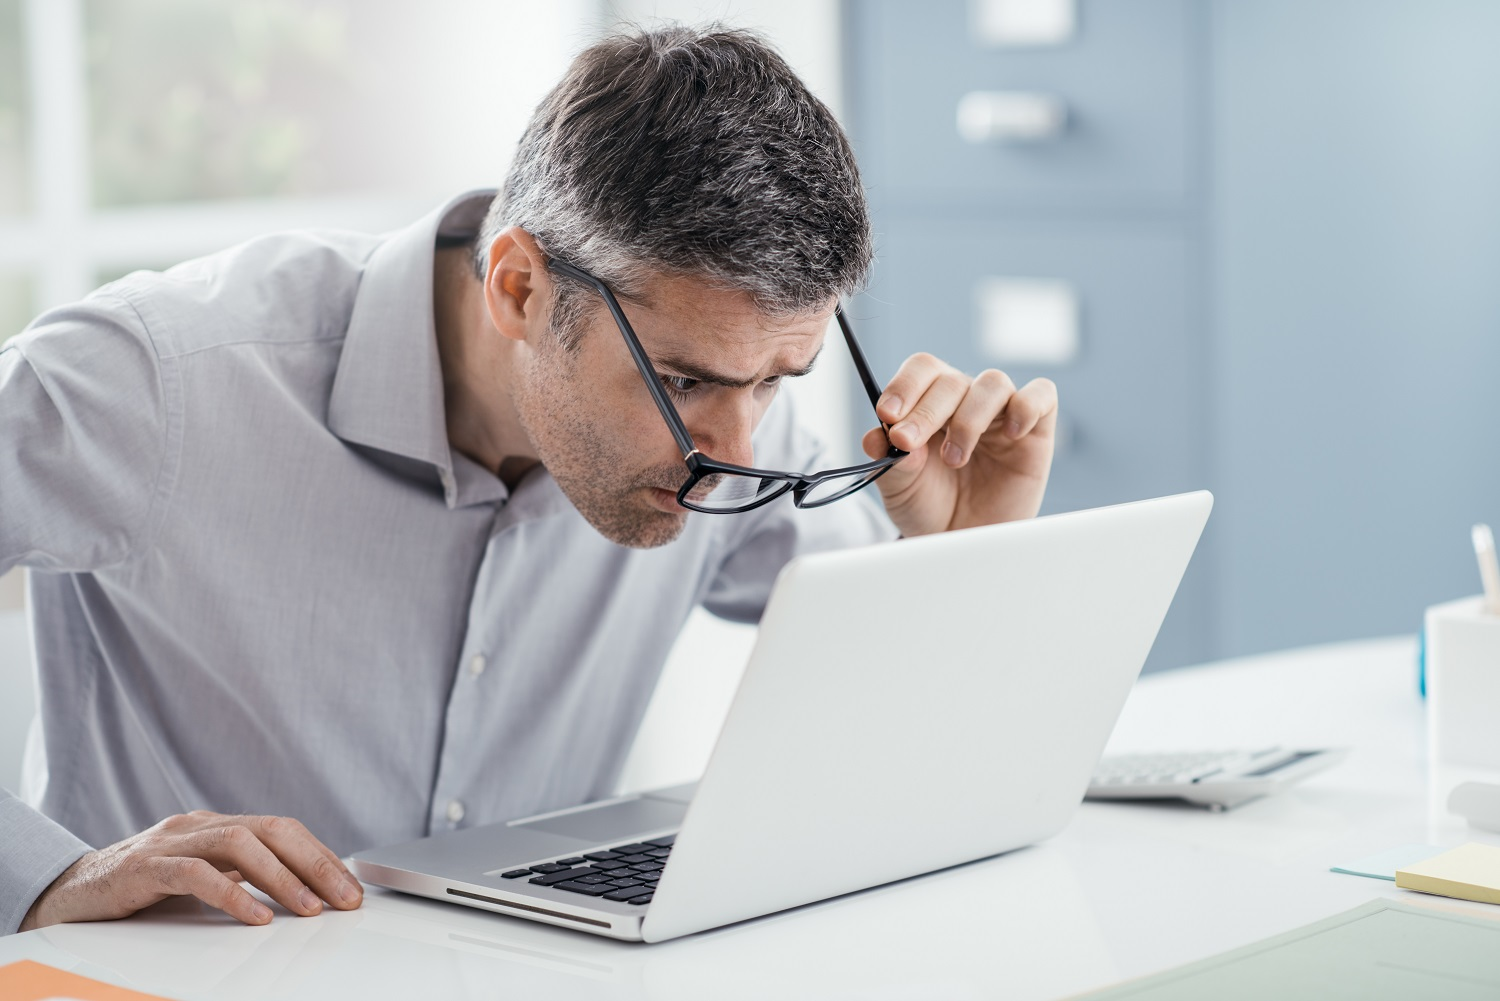 Businessman working at office desk, he is staring at the laptop screen